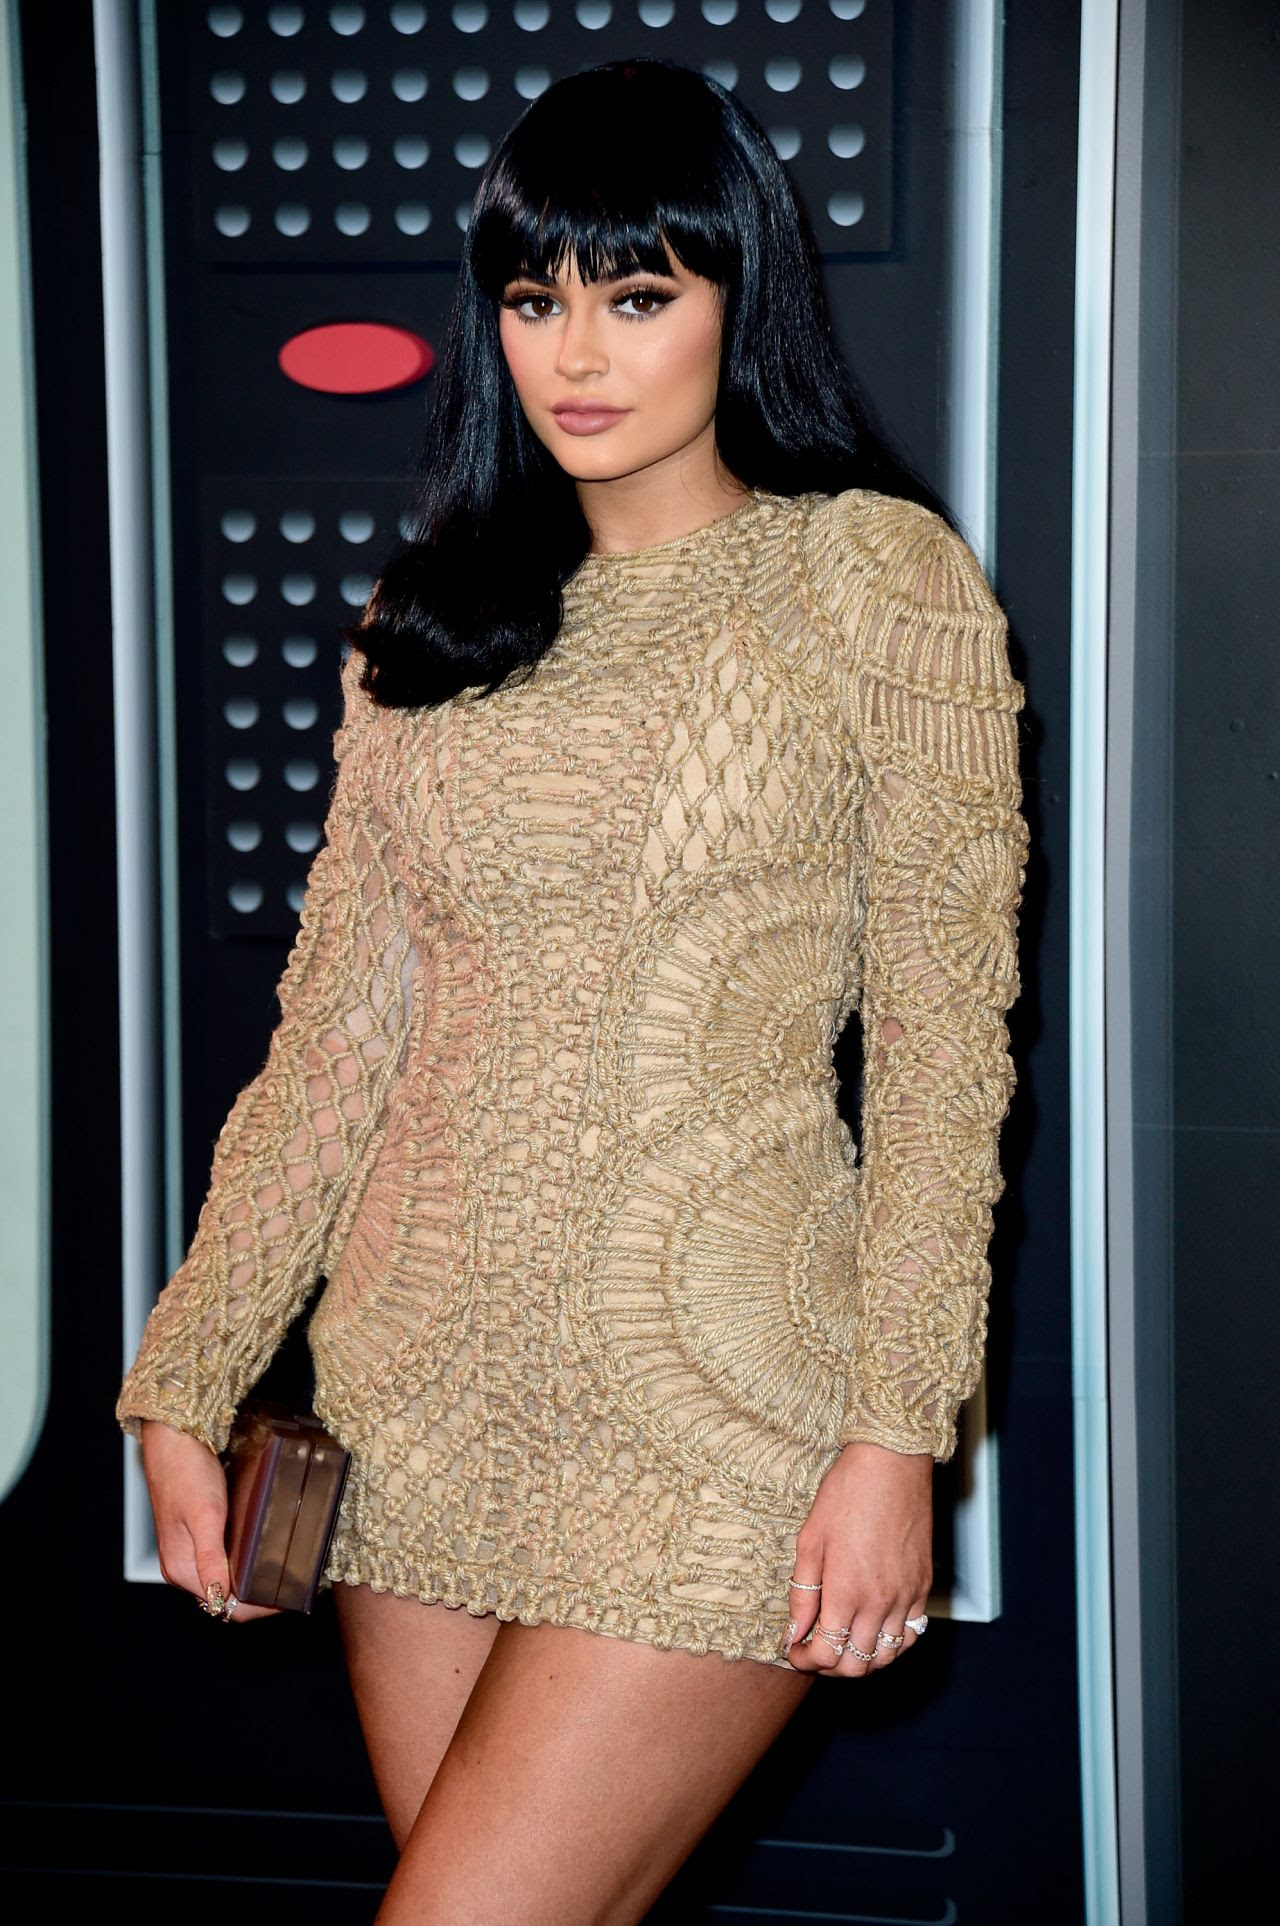 http://celebmafia.com/wp-content/uploads/2015/08/kylie-jenner-2015-mtv-video-music-awards-at-microsoft-theater-in-los-angeles_11.jpg